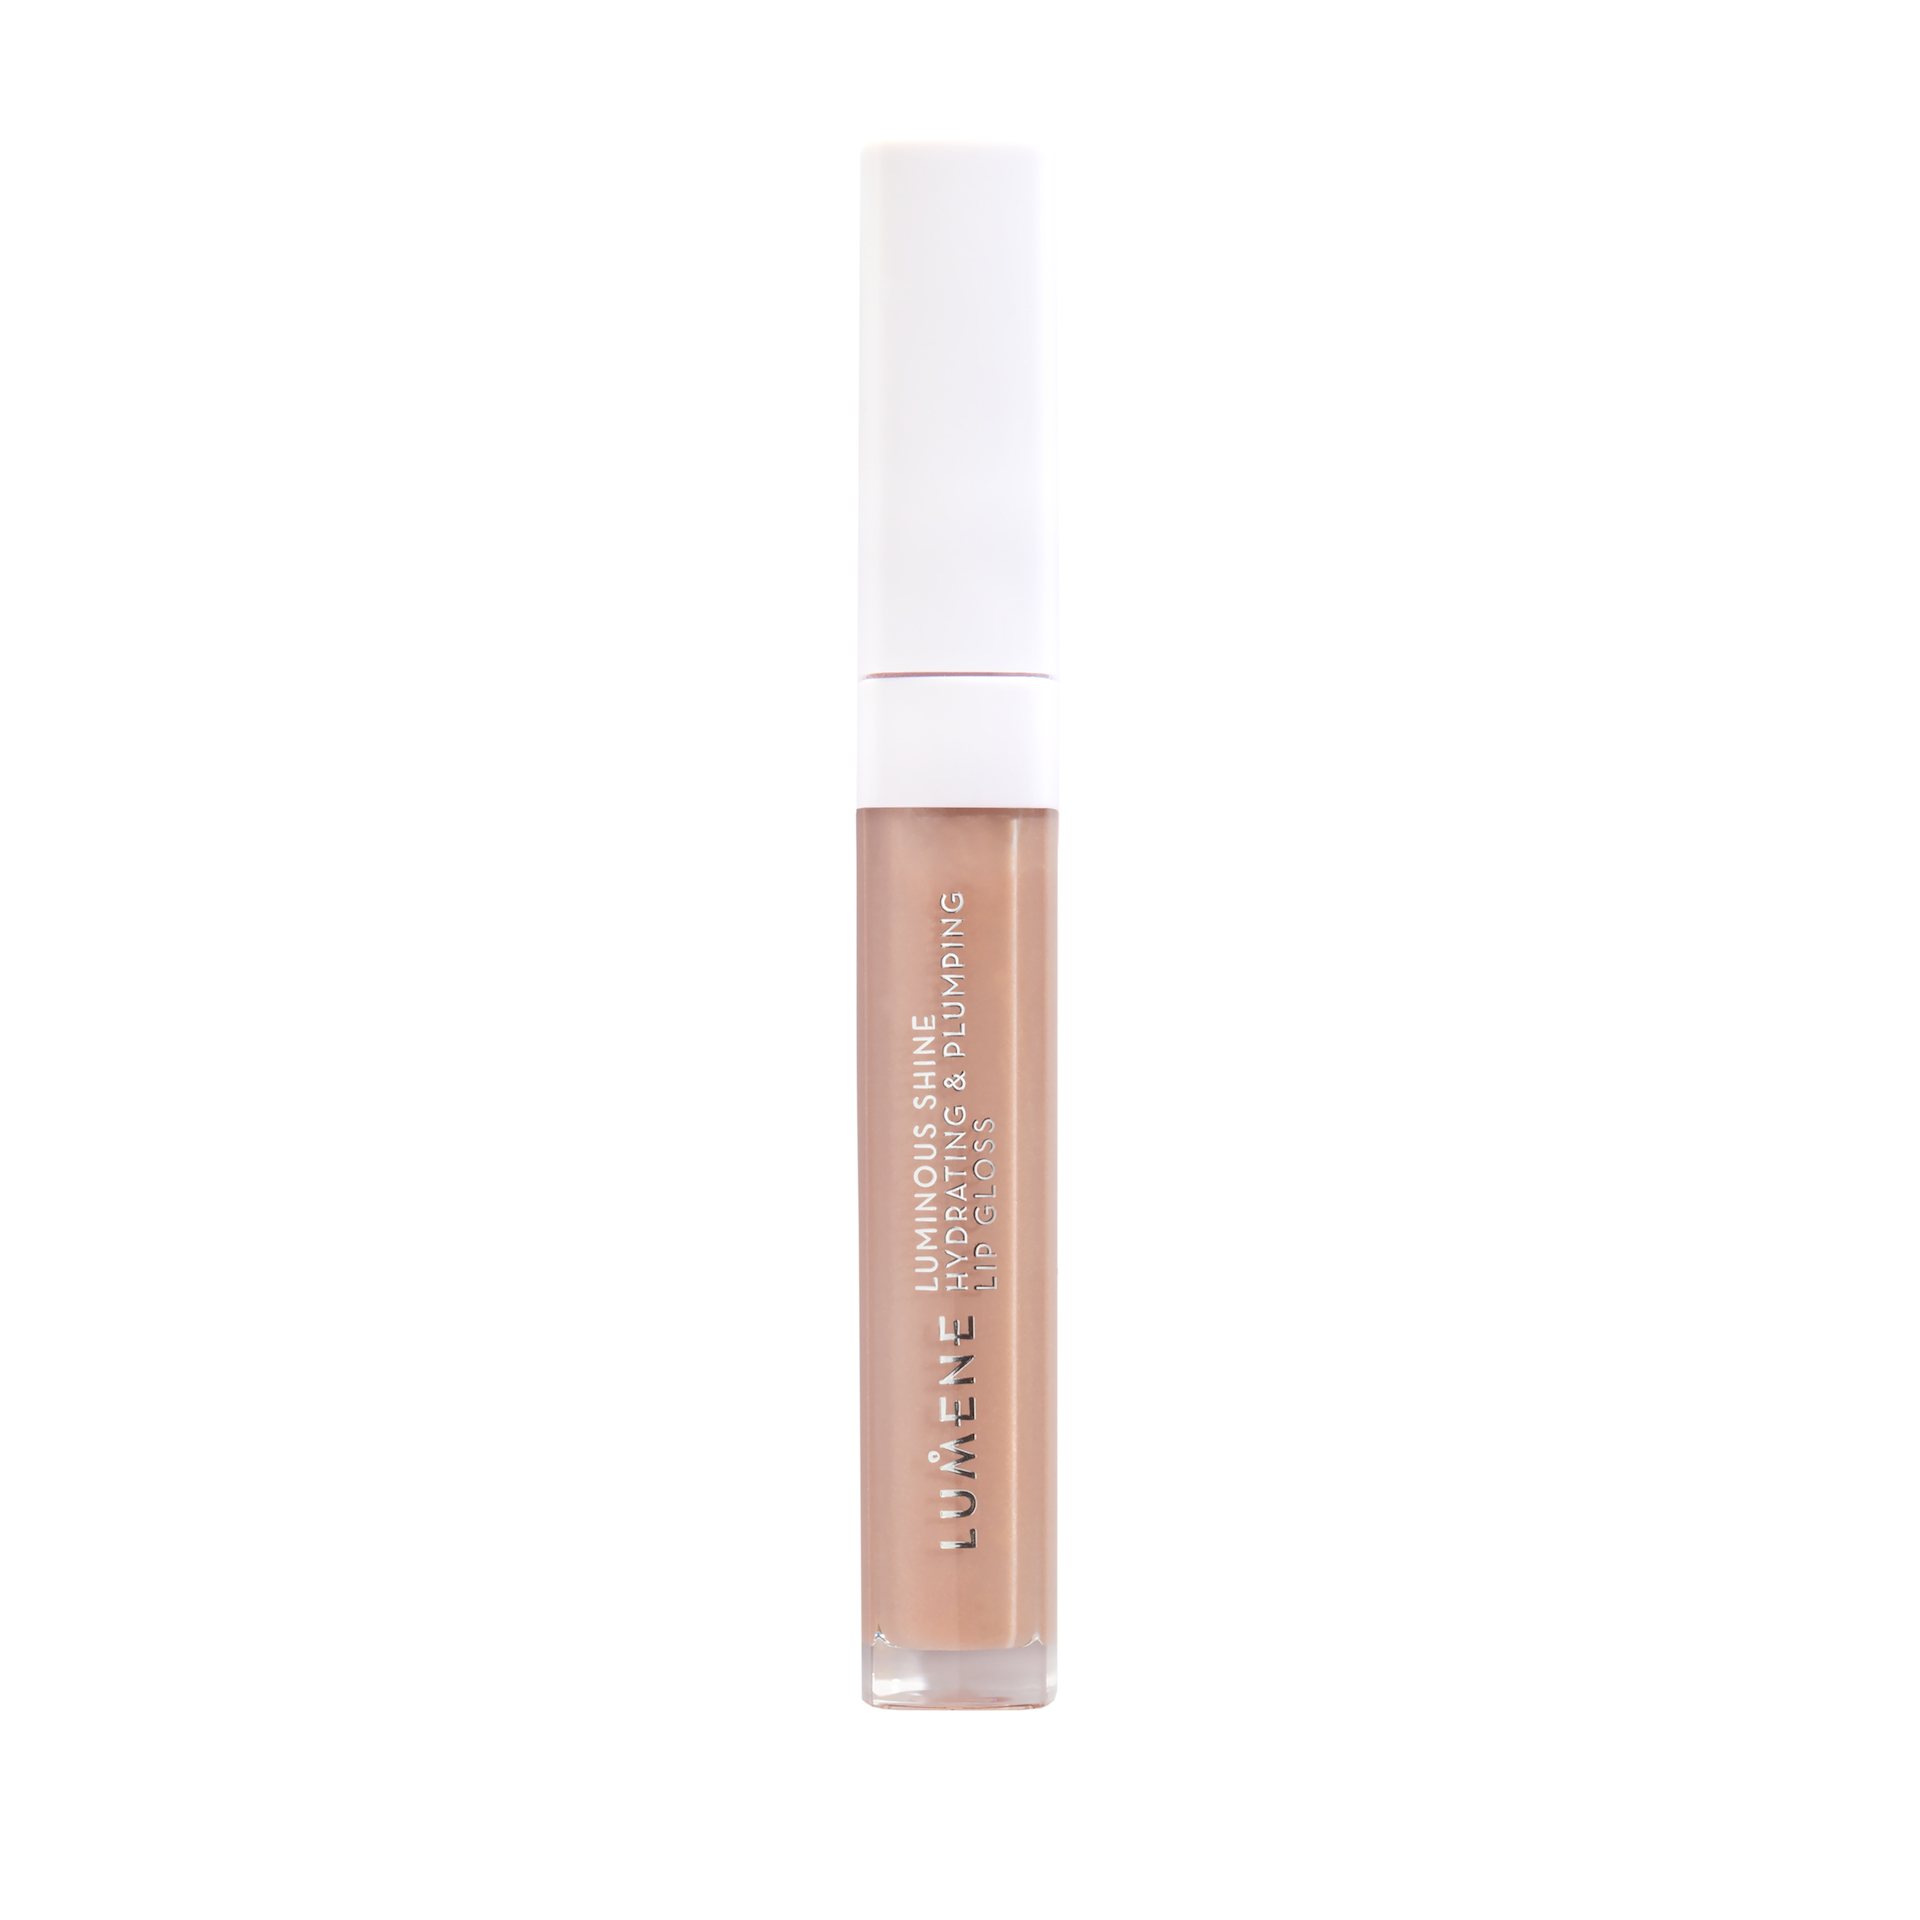 Luminous Shine Hydrating & Plumping Lip Gloss 1 Pale Honey